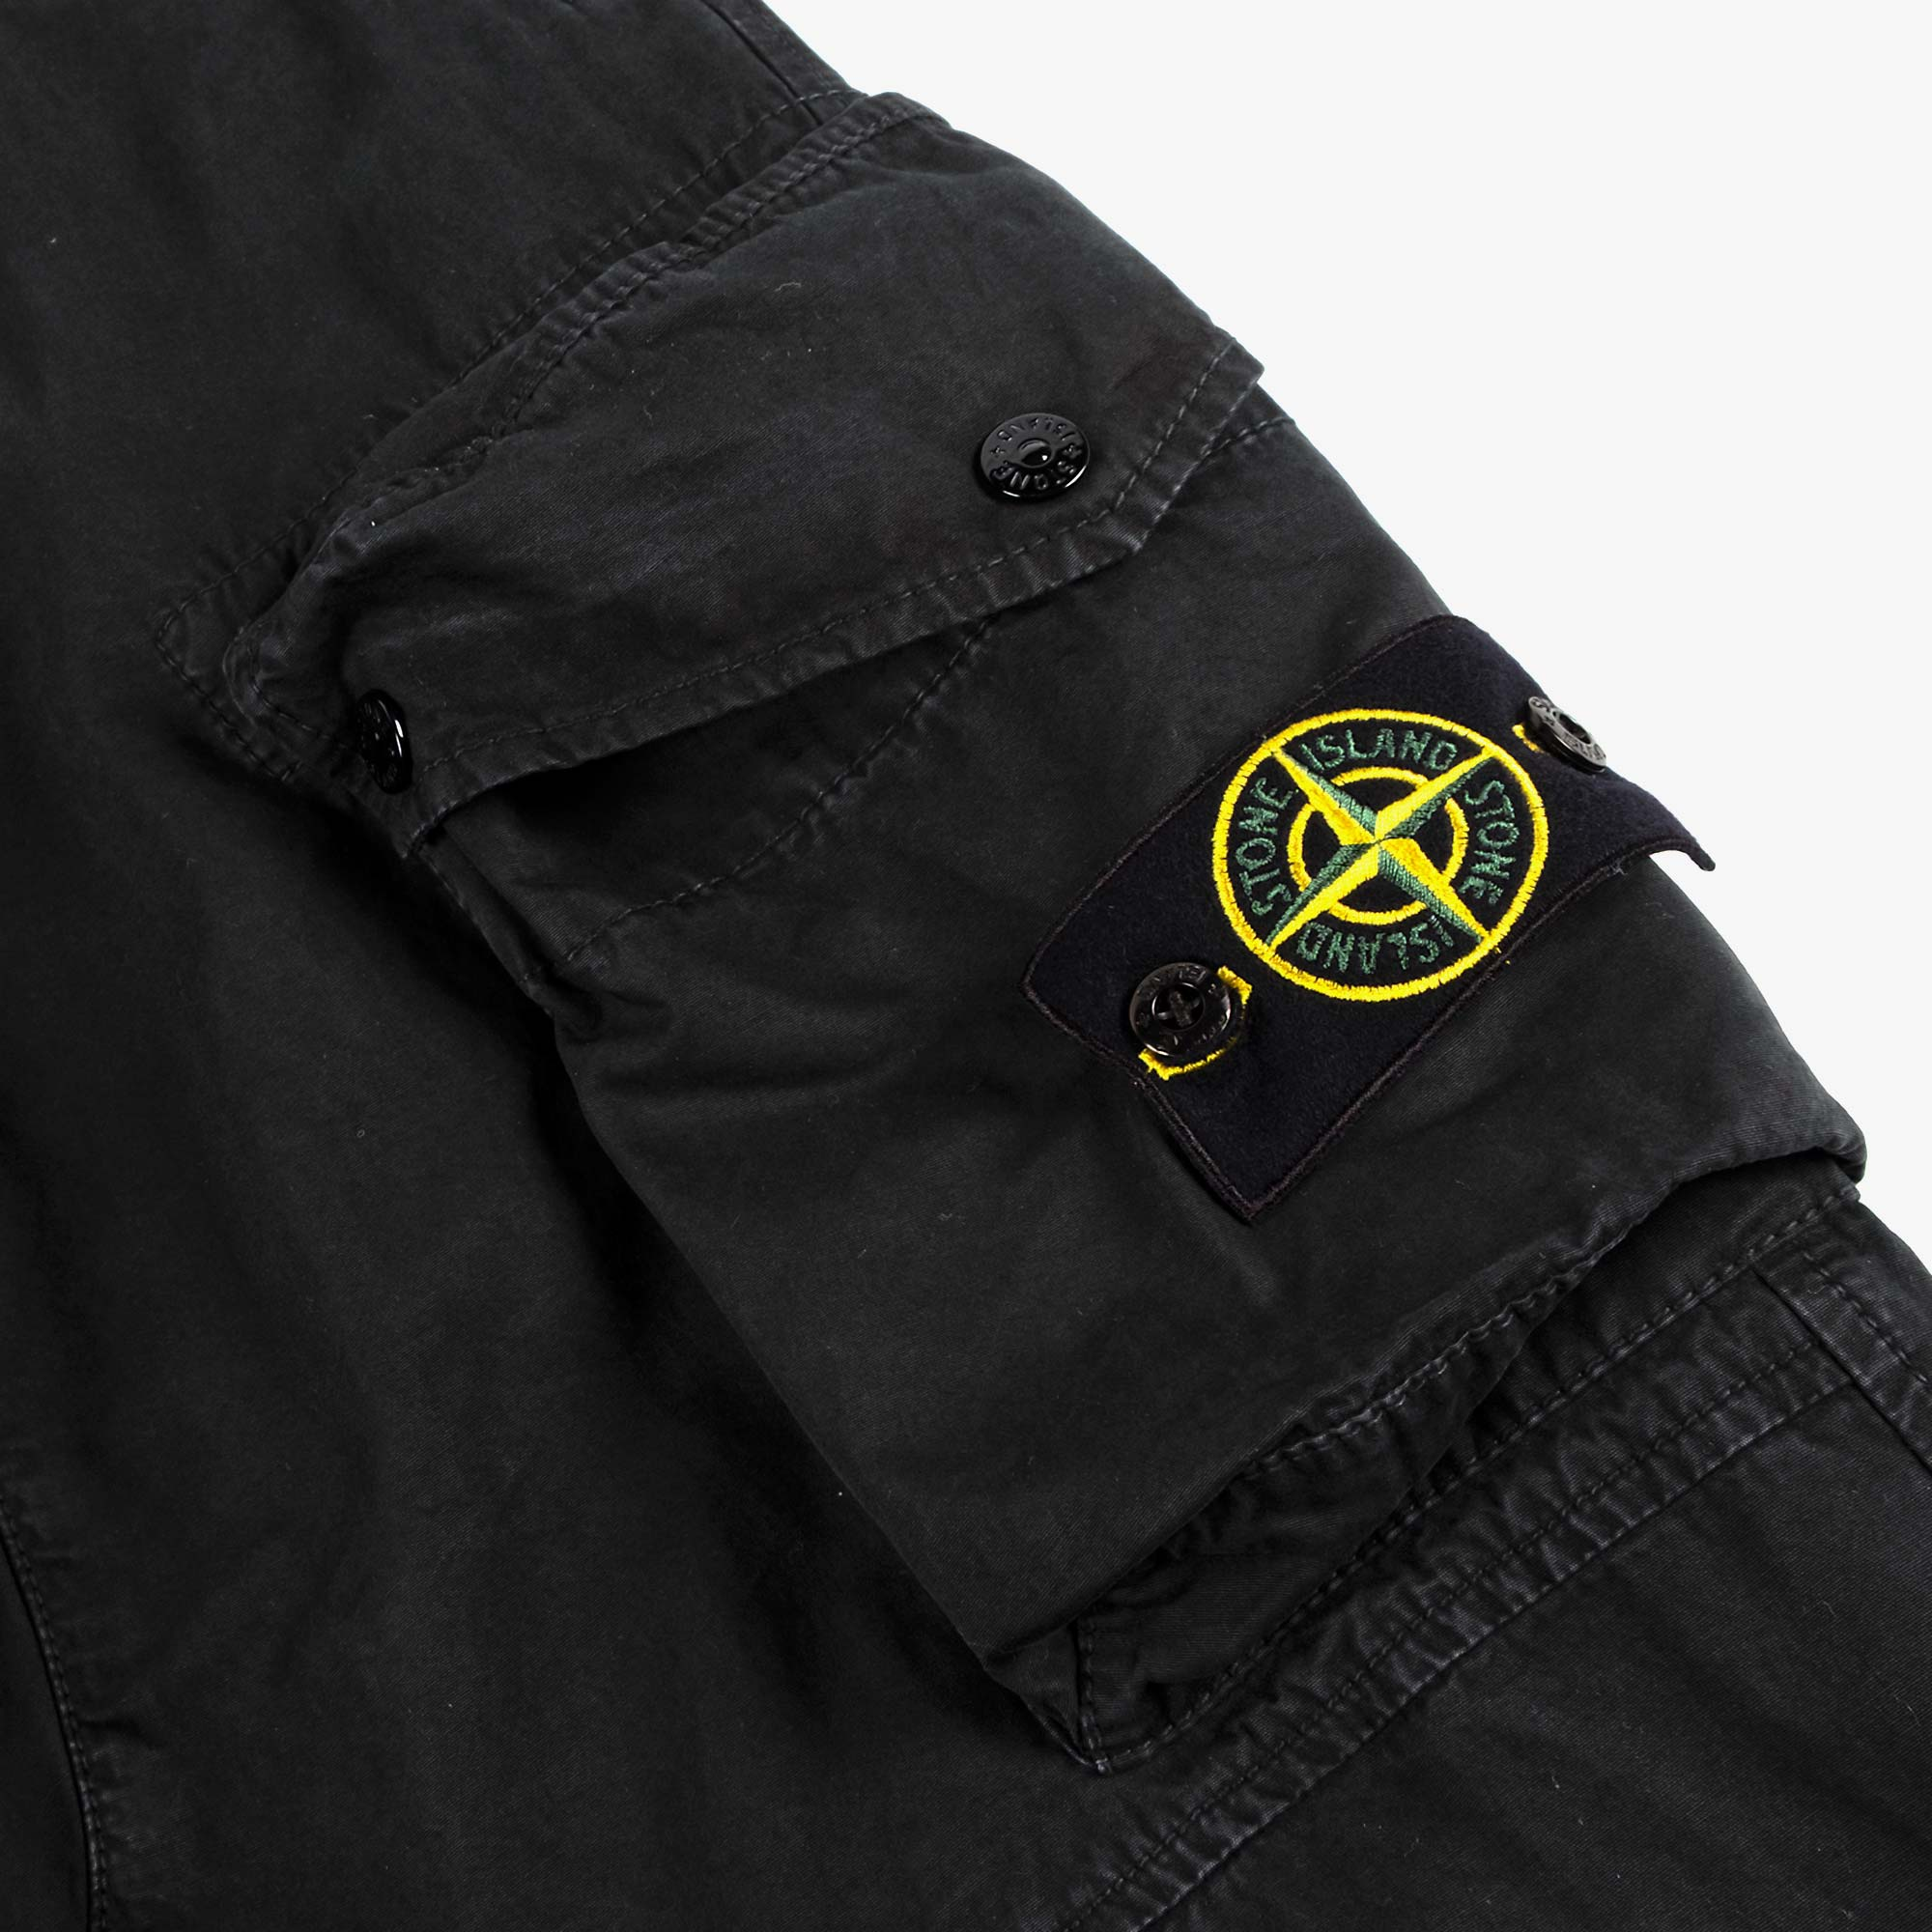 Stone Island T.CO Old Effect Cargo Pant 7415319WA - Black 3